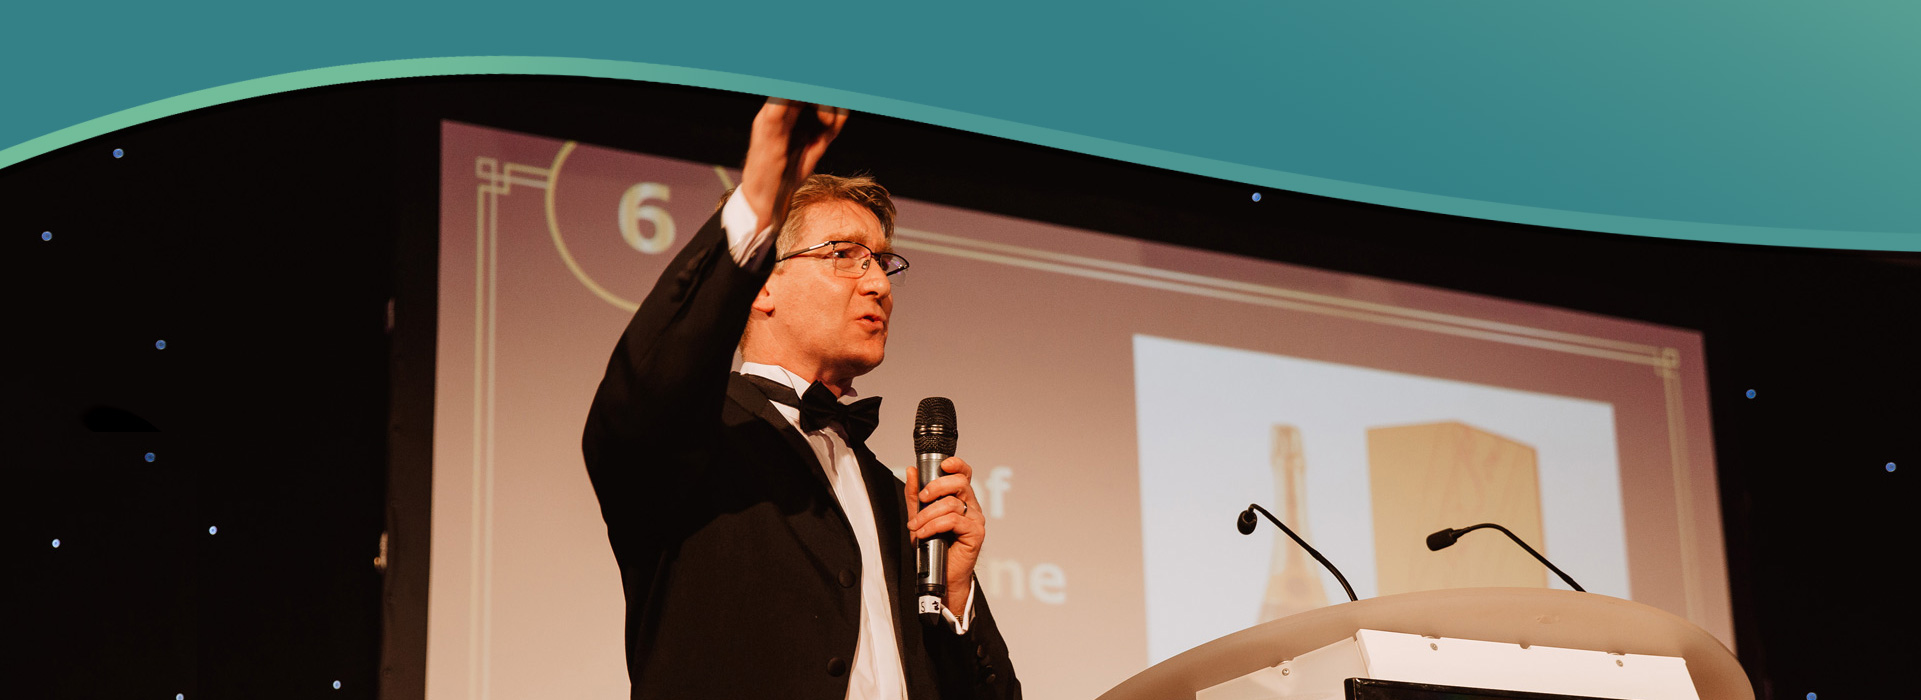 auctioneering services Cheshire